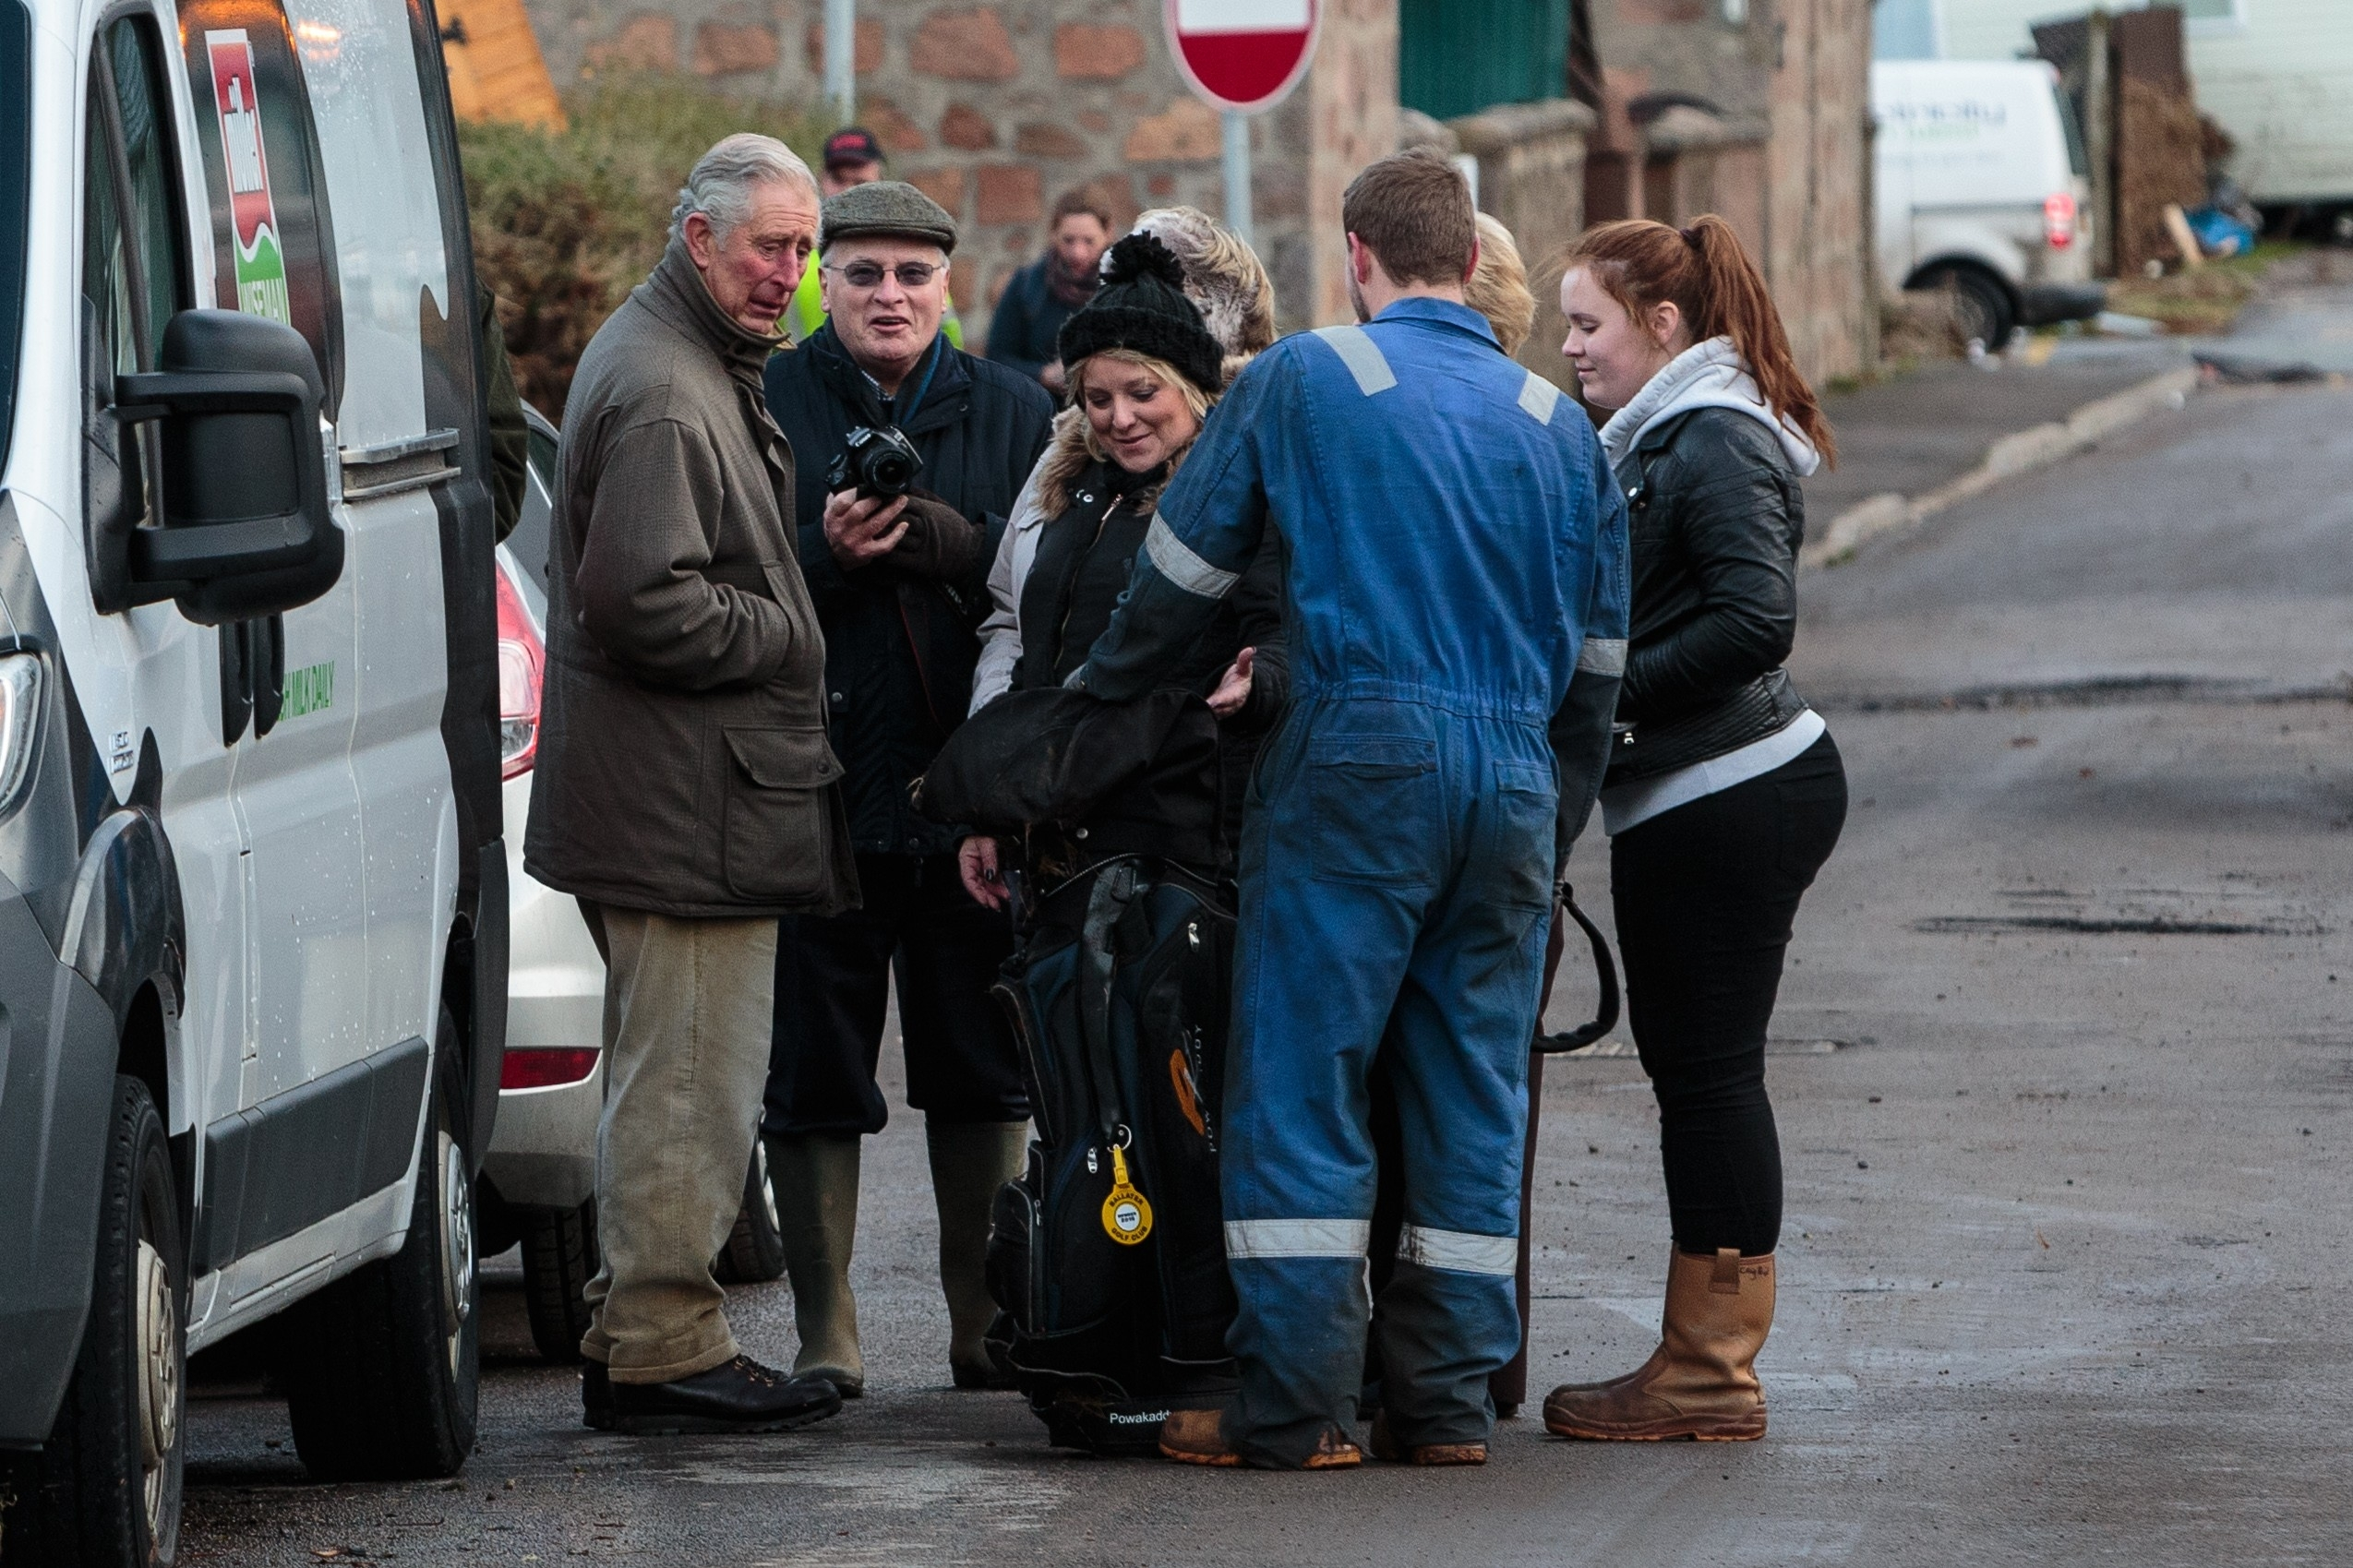 Thursday 31st December 2015, Aberdeen, Scotland. The aftermath of Storm Frank is revealed as residents of Ballater begin the clear up on New Years Eve Pictured: Prince Charles speaks to residents in Ballater amongst the devistation in the wake of Storm Frank (Photo: Ross Johnston/Newsline Media)